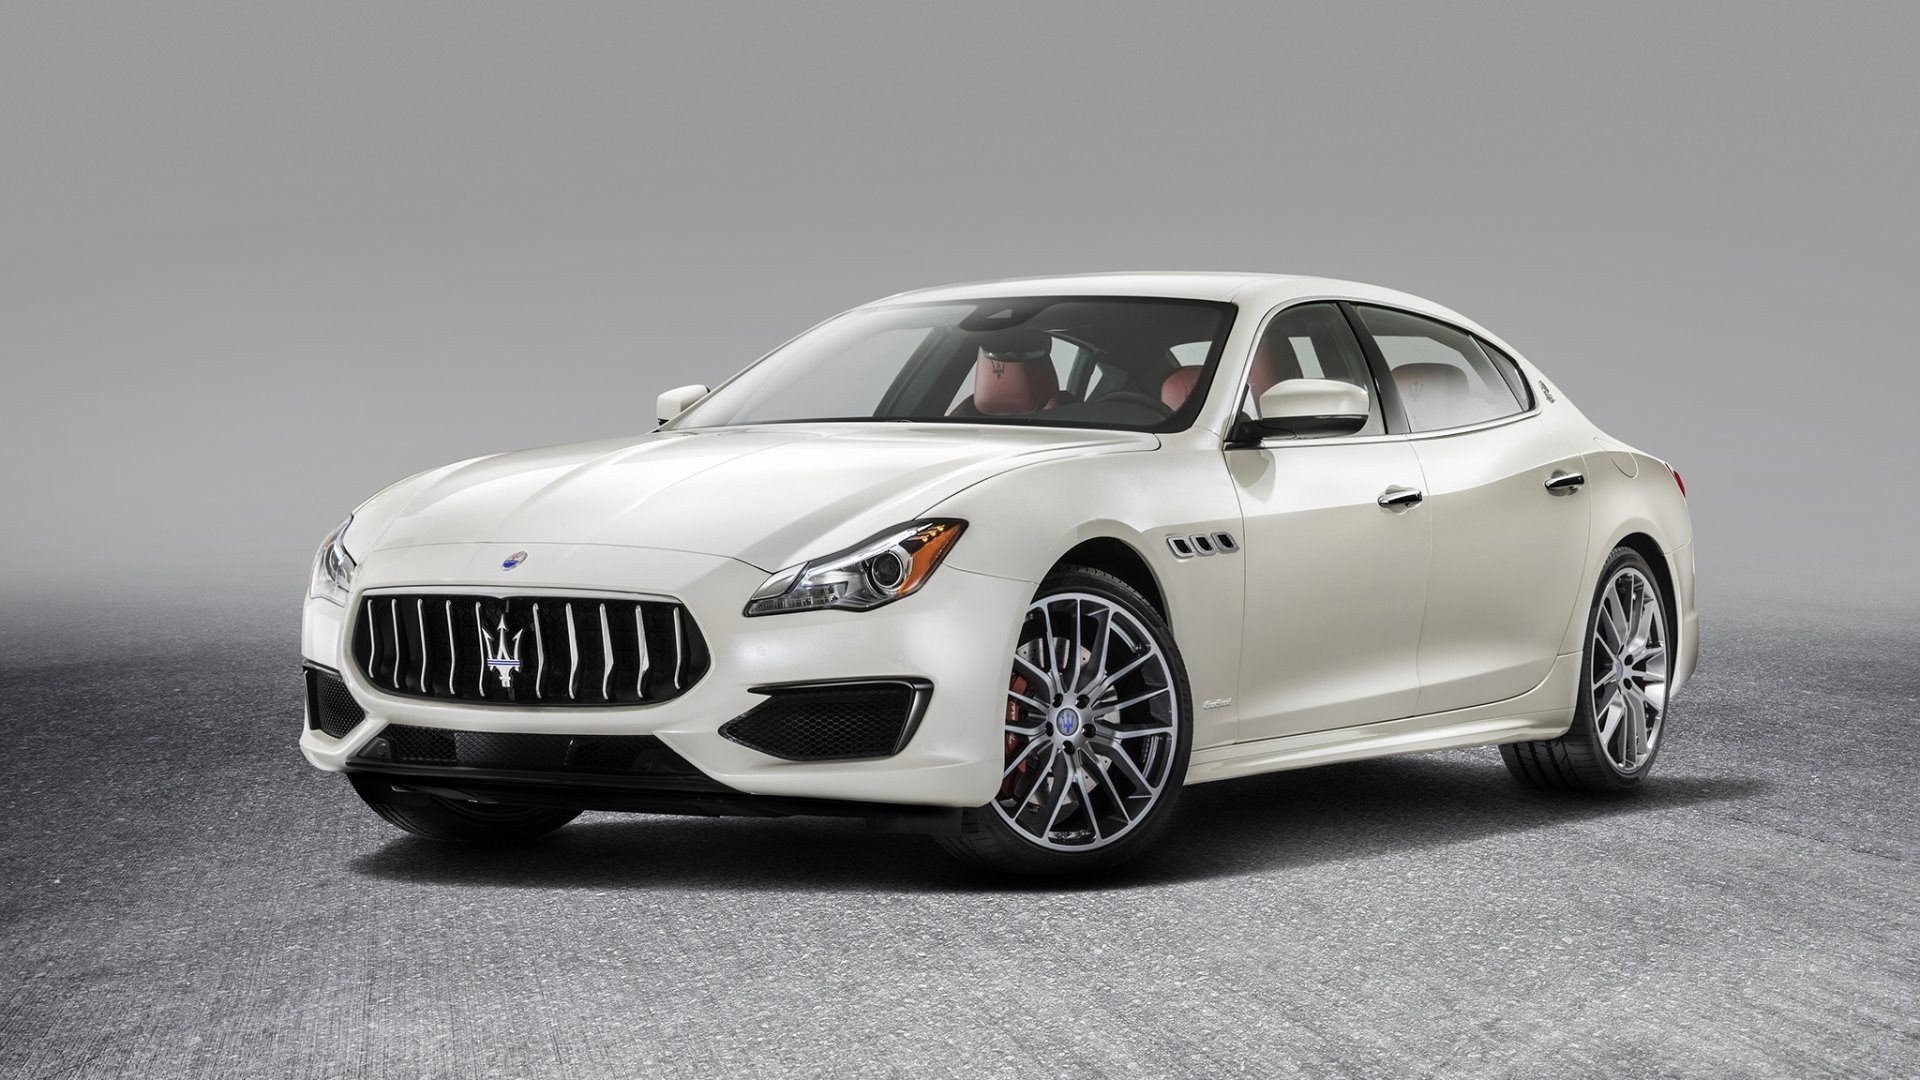 2017 maserati quattroporte granlusso wallpaper background